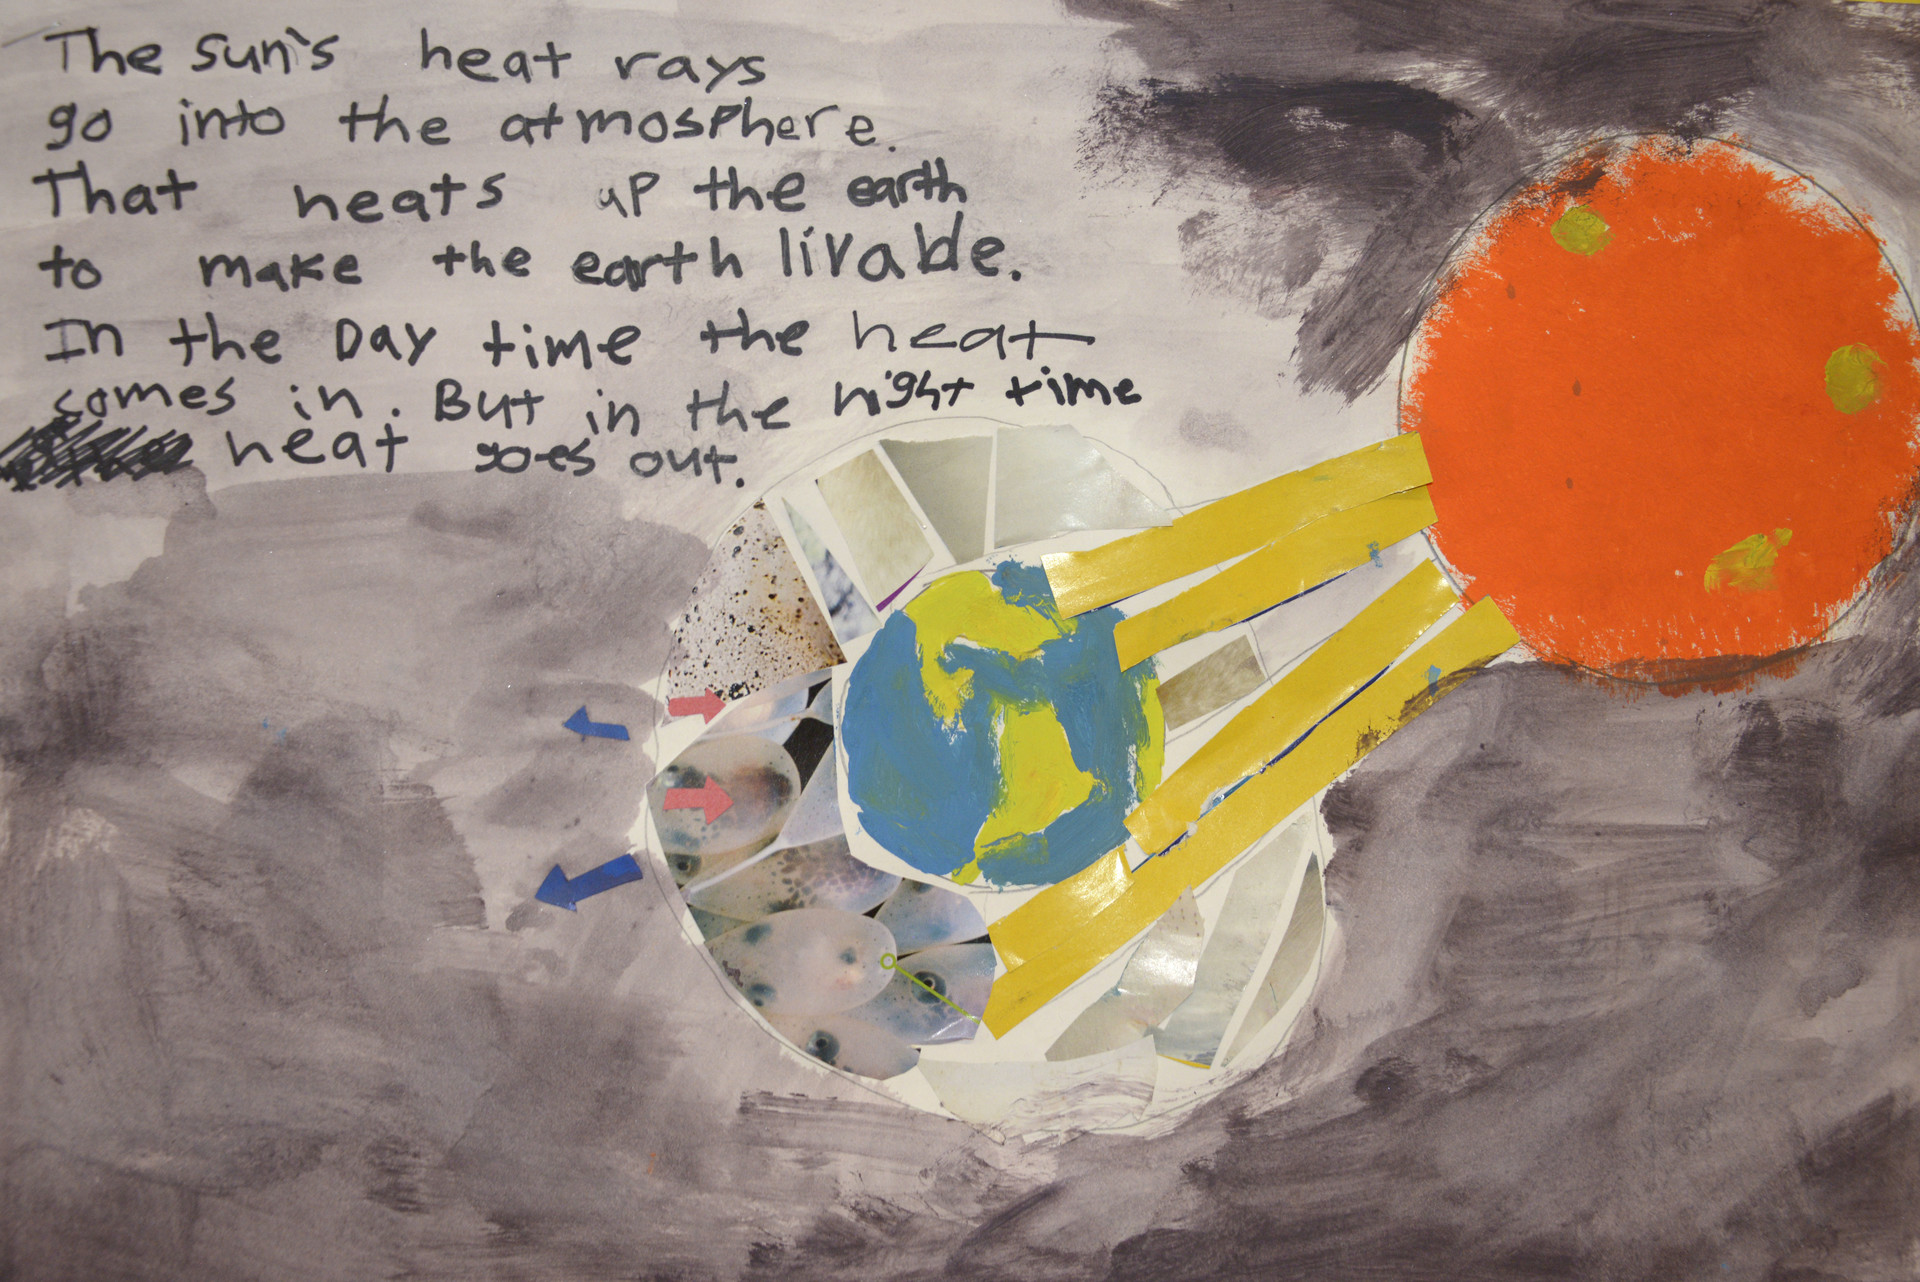 John's artwork depicting the greenhouse gas effect.